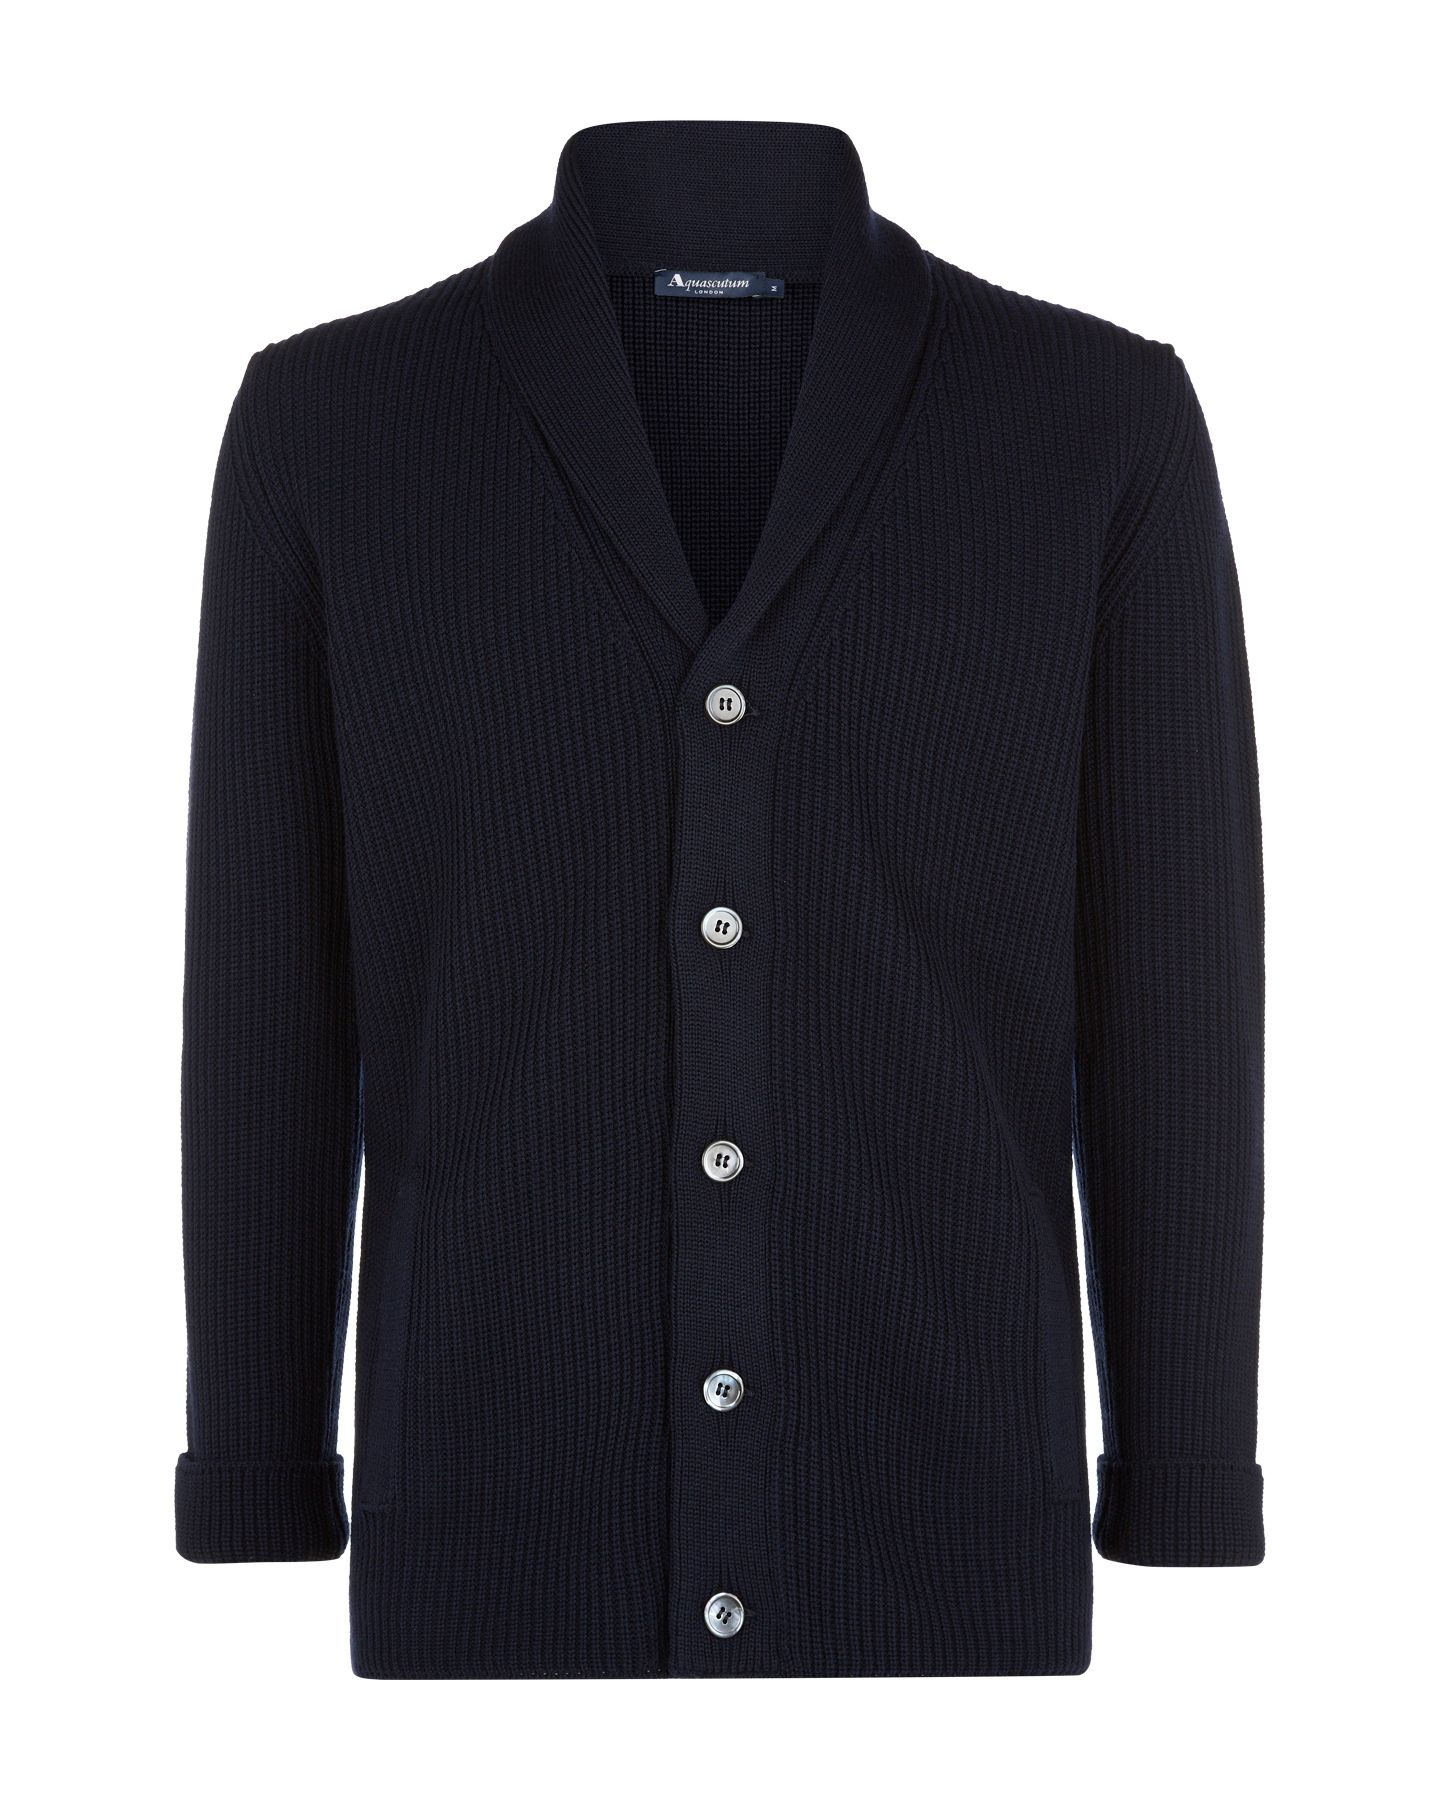 Dacre shawl collar cardigan